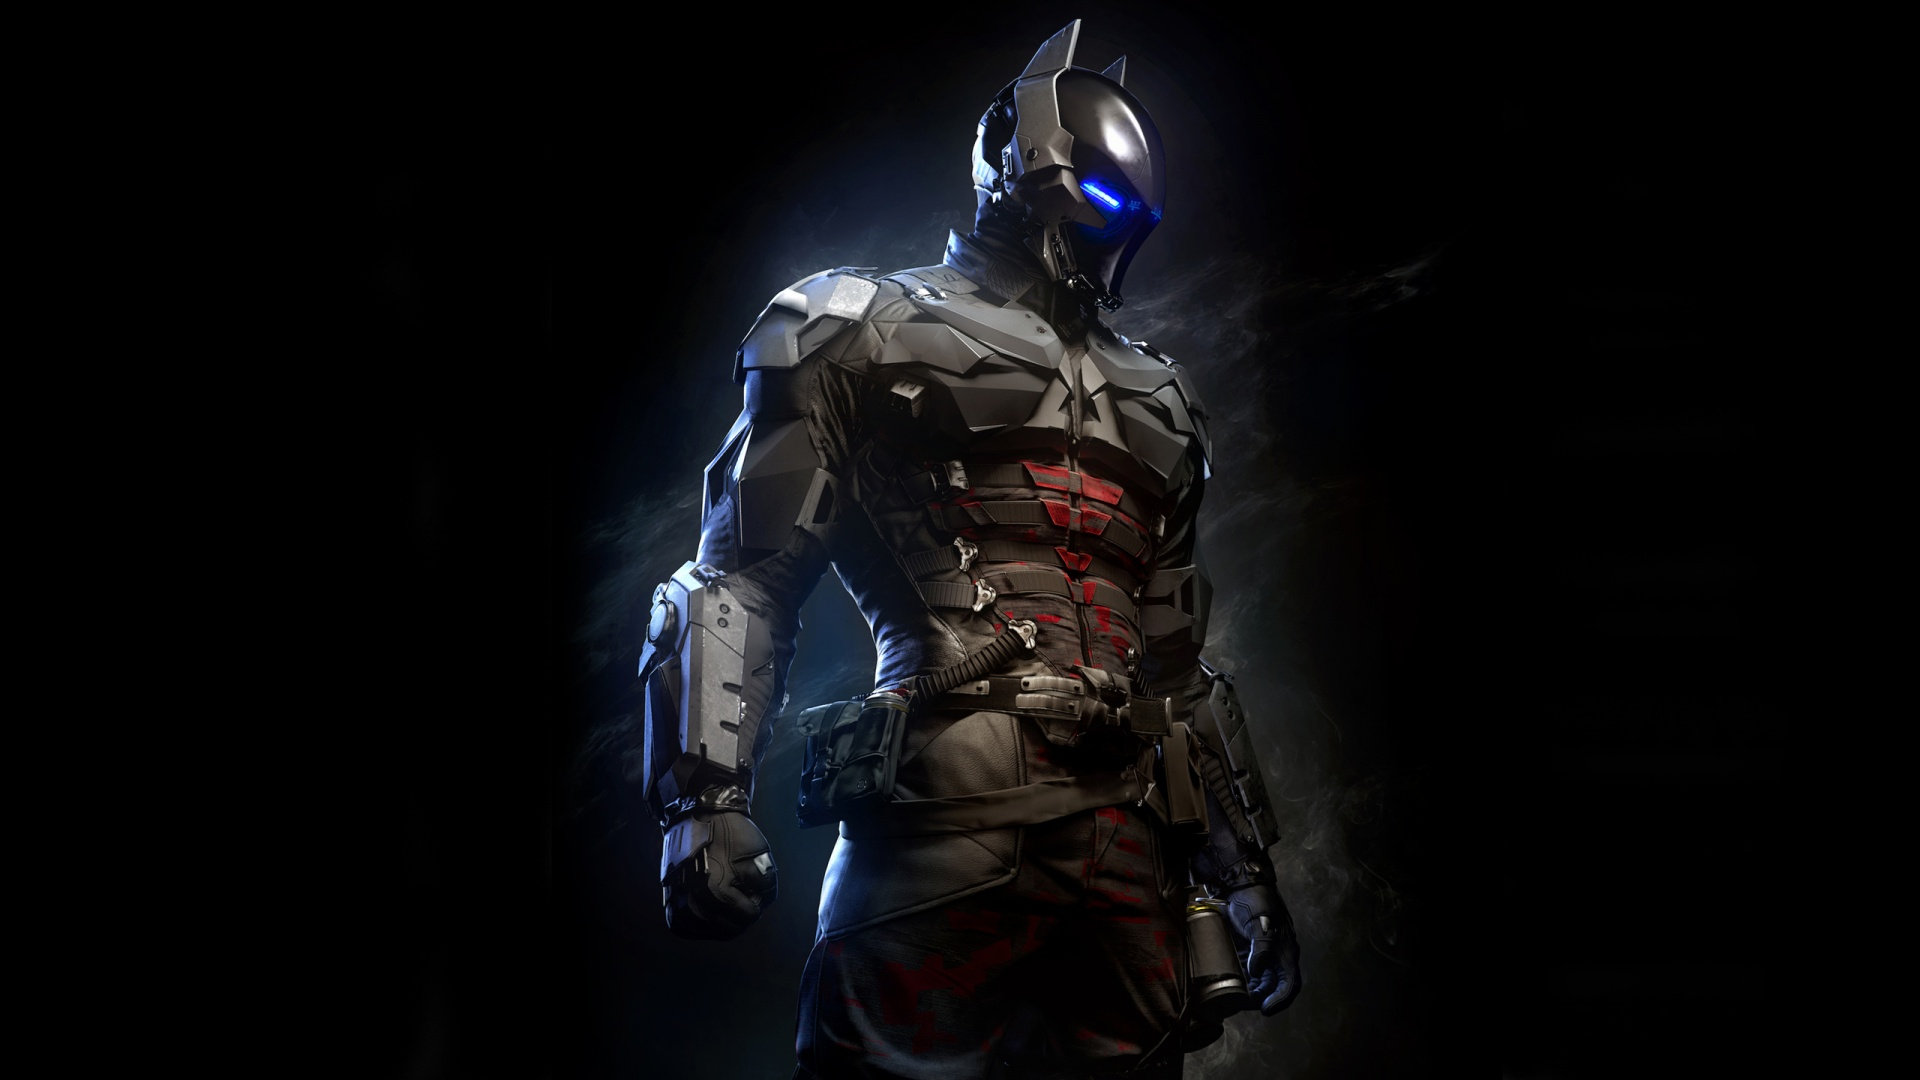 batman arkham knight game #4145771, 2880x1800 | all for desktop